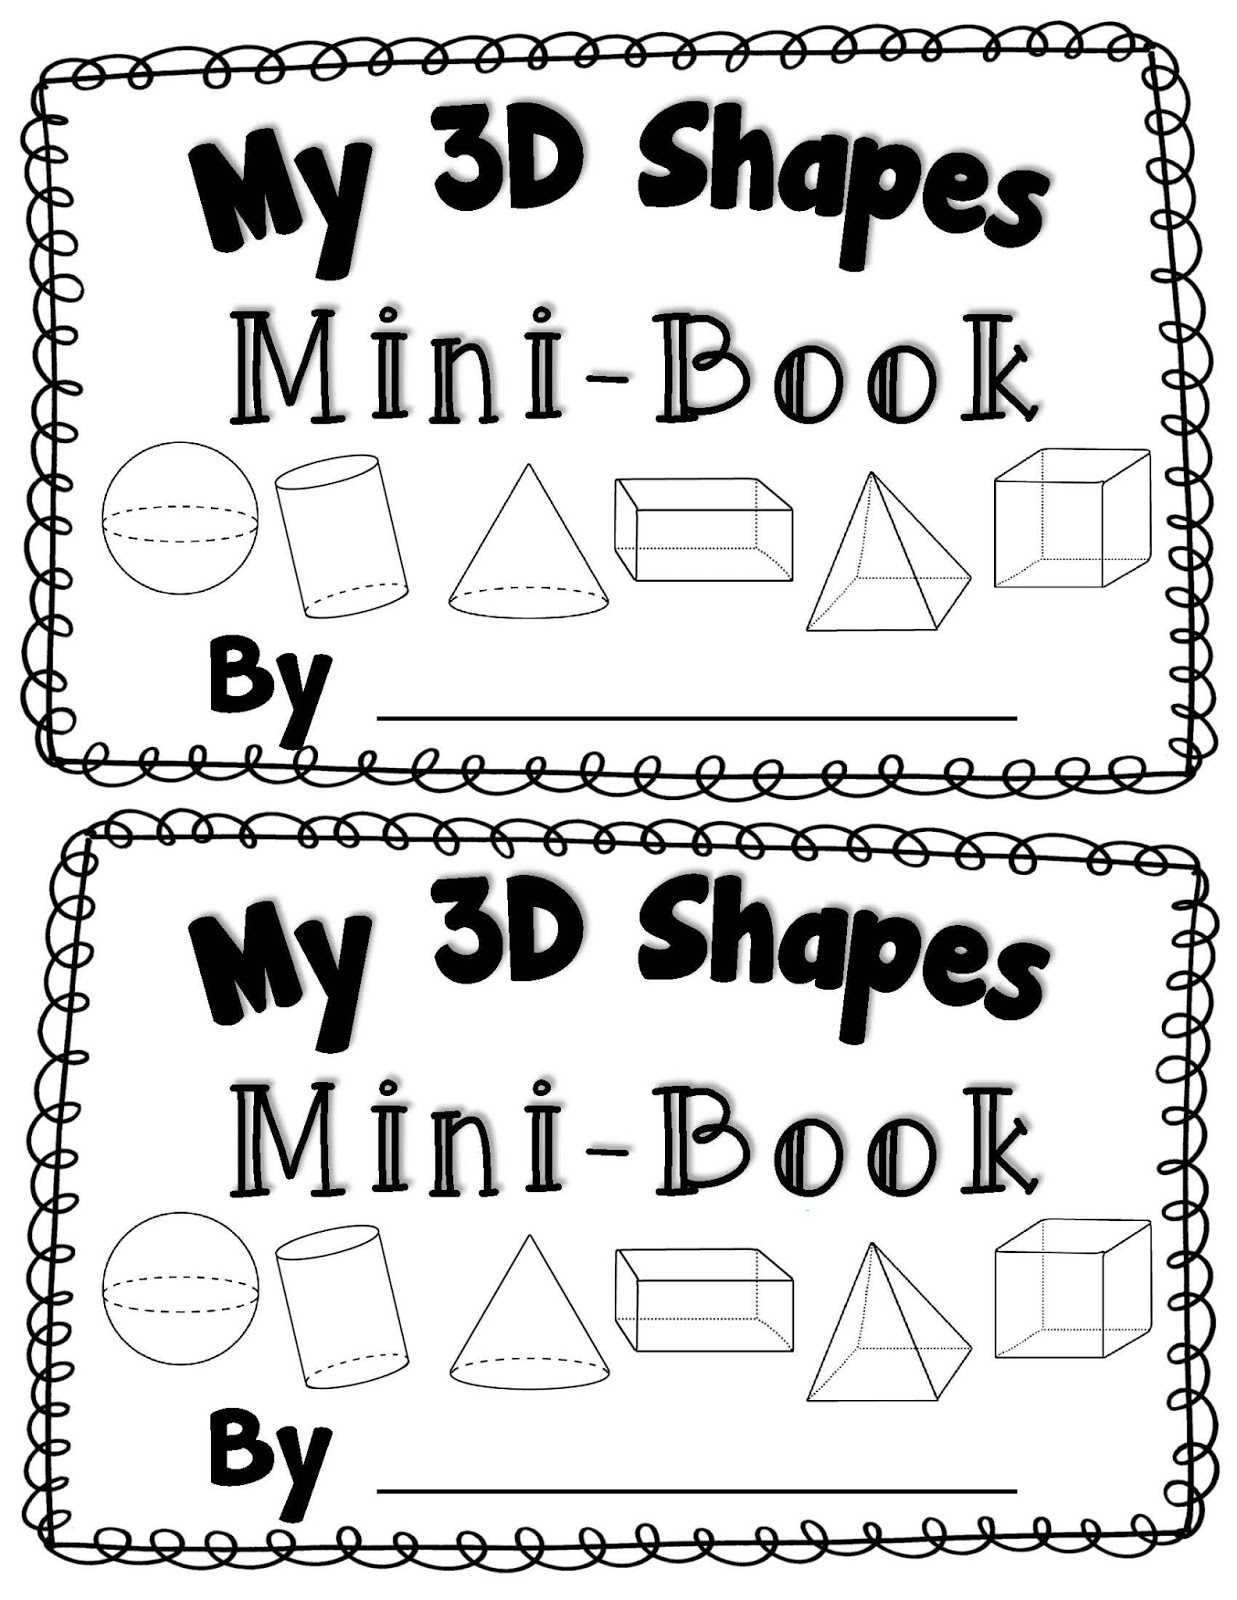 14 Best Images Of 3d Shapes Worksheets Printables Kindergarten